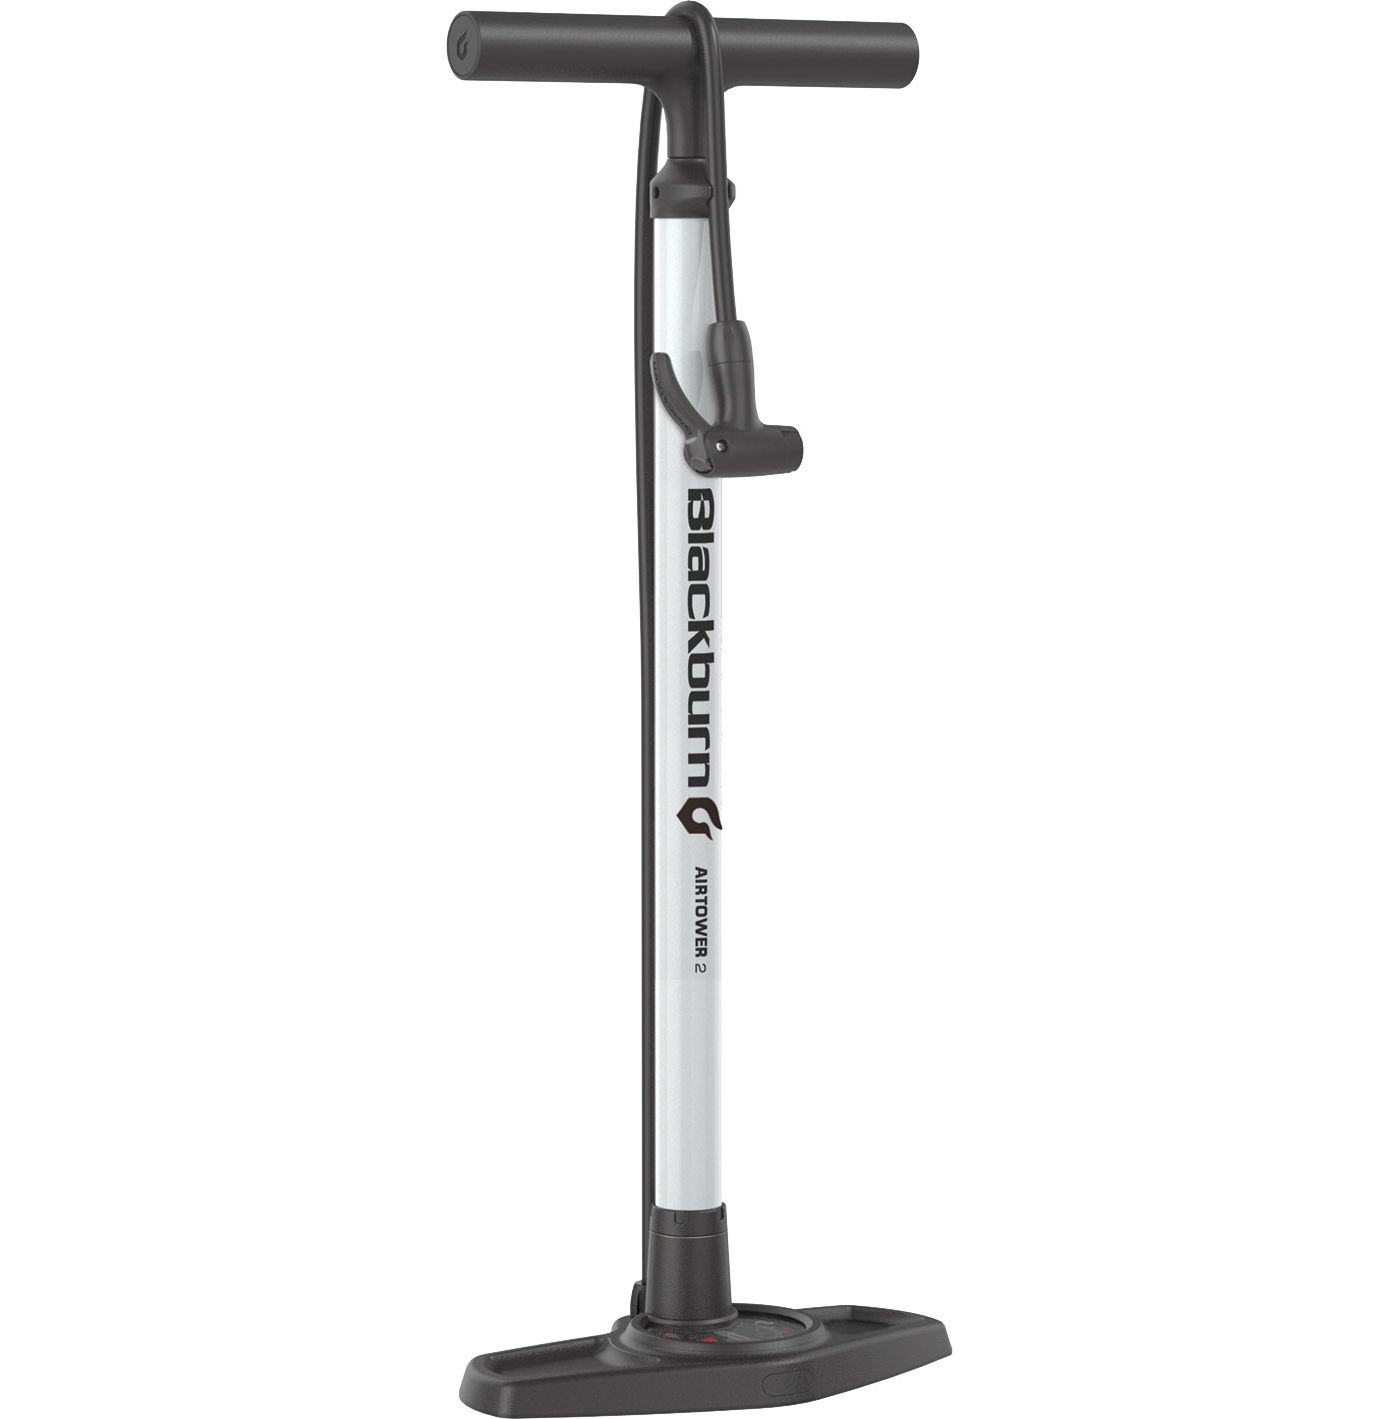 Blackburn Airtower 2 Bike Floor Pump